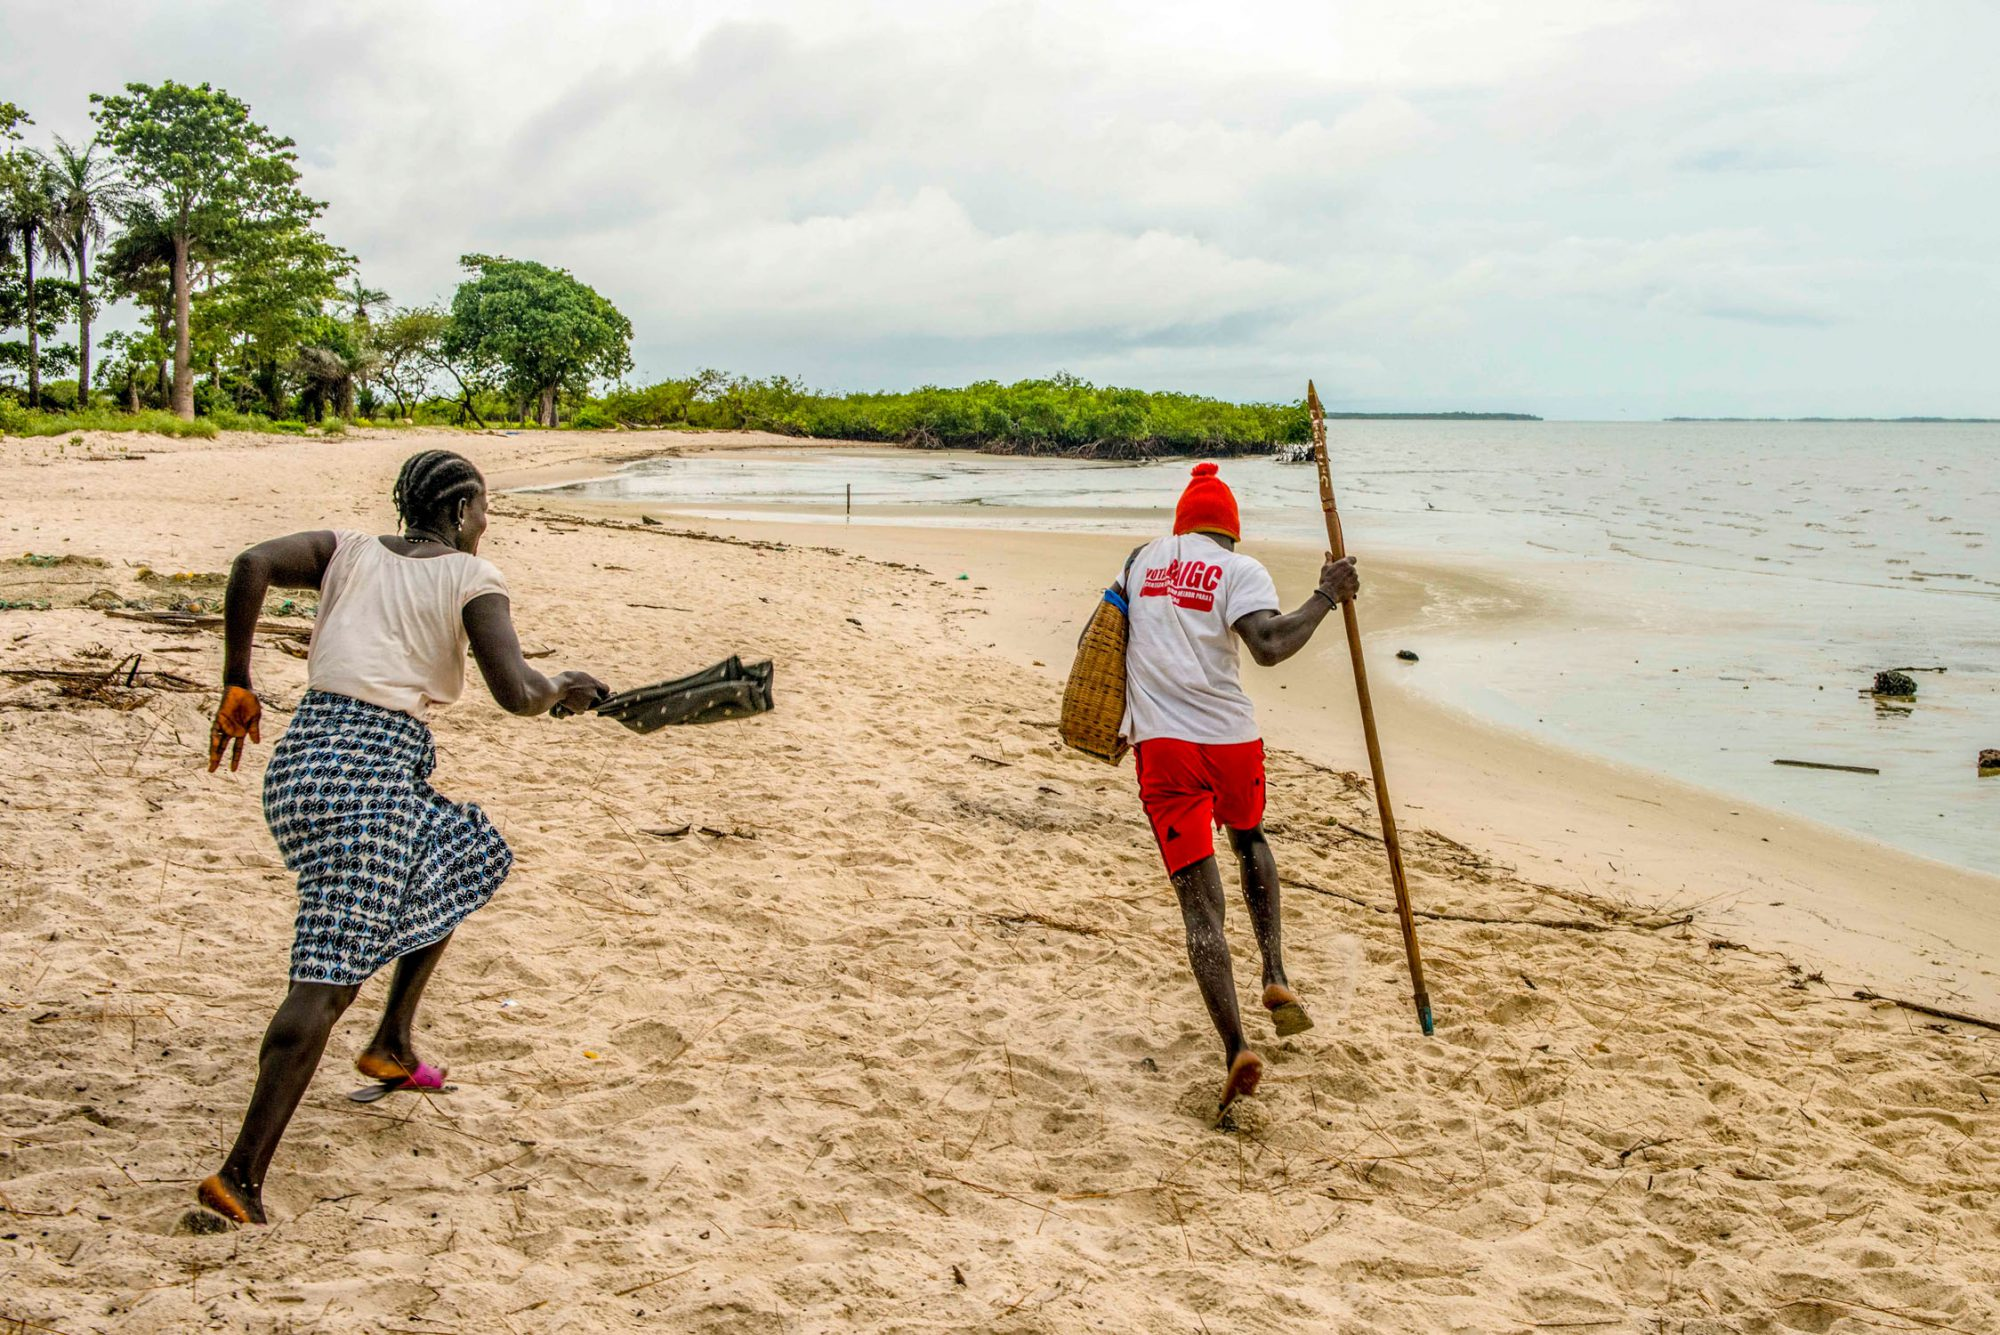 Matriarchal traditions determine everyday life on some of the Bijangos Islands. The women dominate to the point that even future warriors are afraid of them